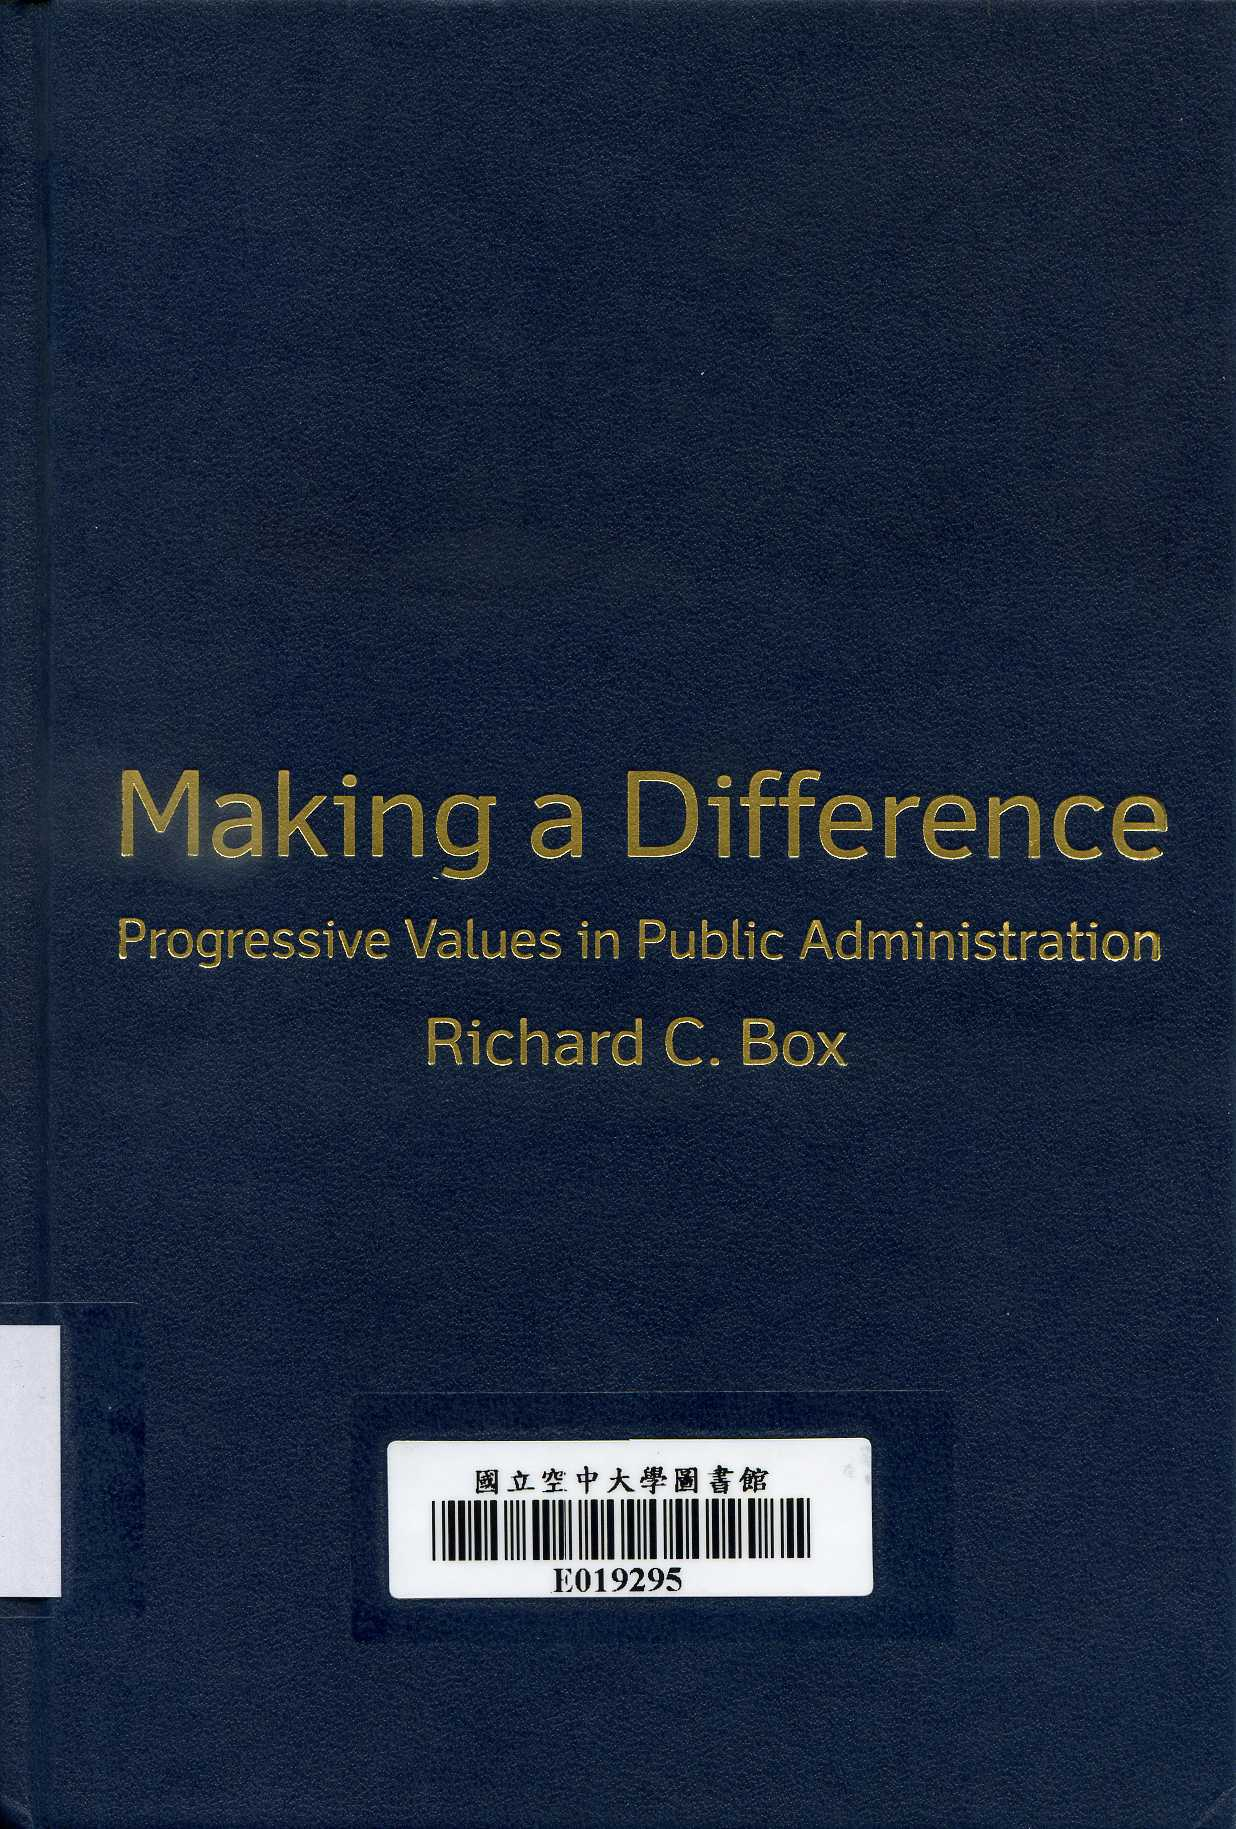 Making a difference : progressive values in public administration / Richard C. Box.